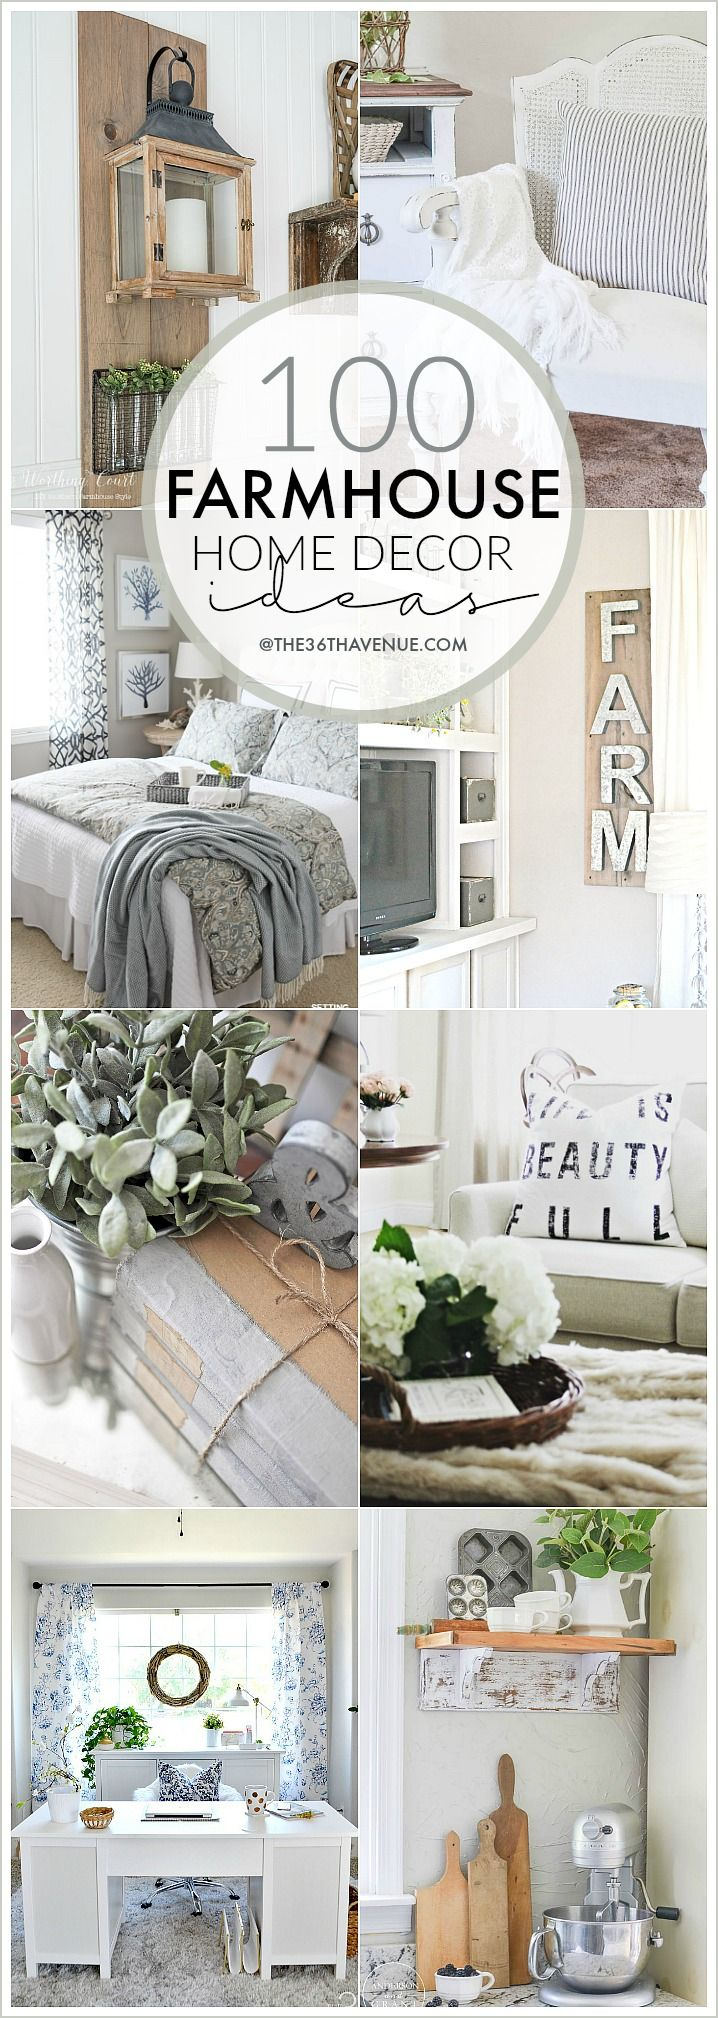 Best 25+ Country farmhouse decor ideas on Pinterest | Farmhouse decor, Farm  kitchen decor and Farmhouse style